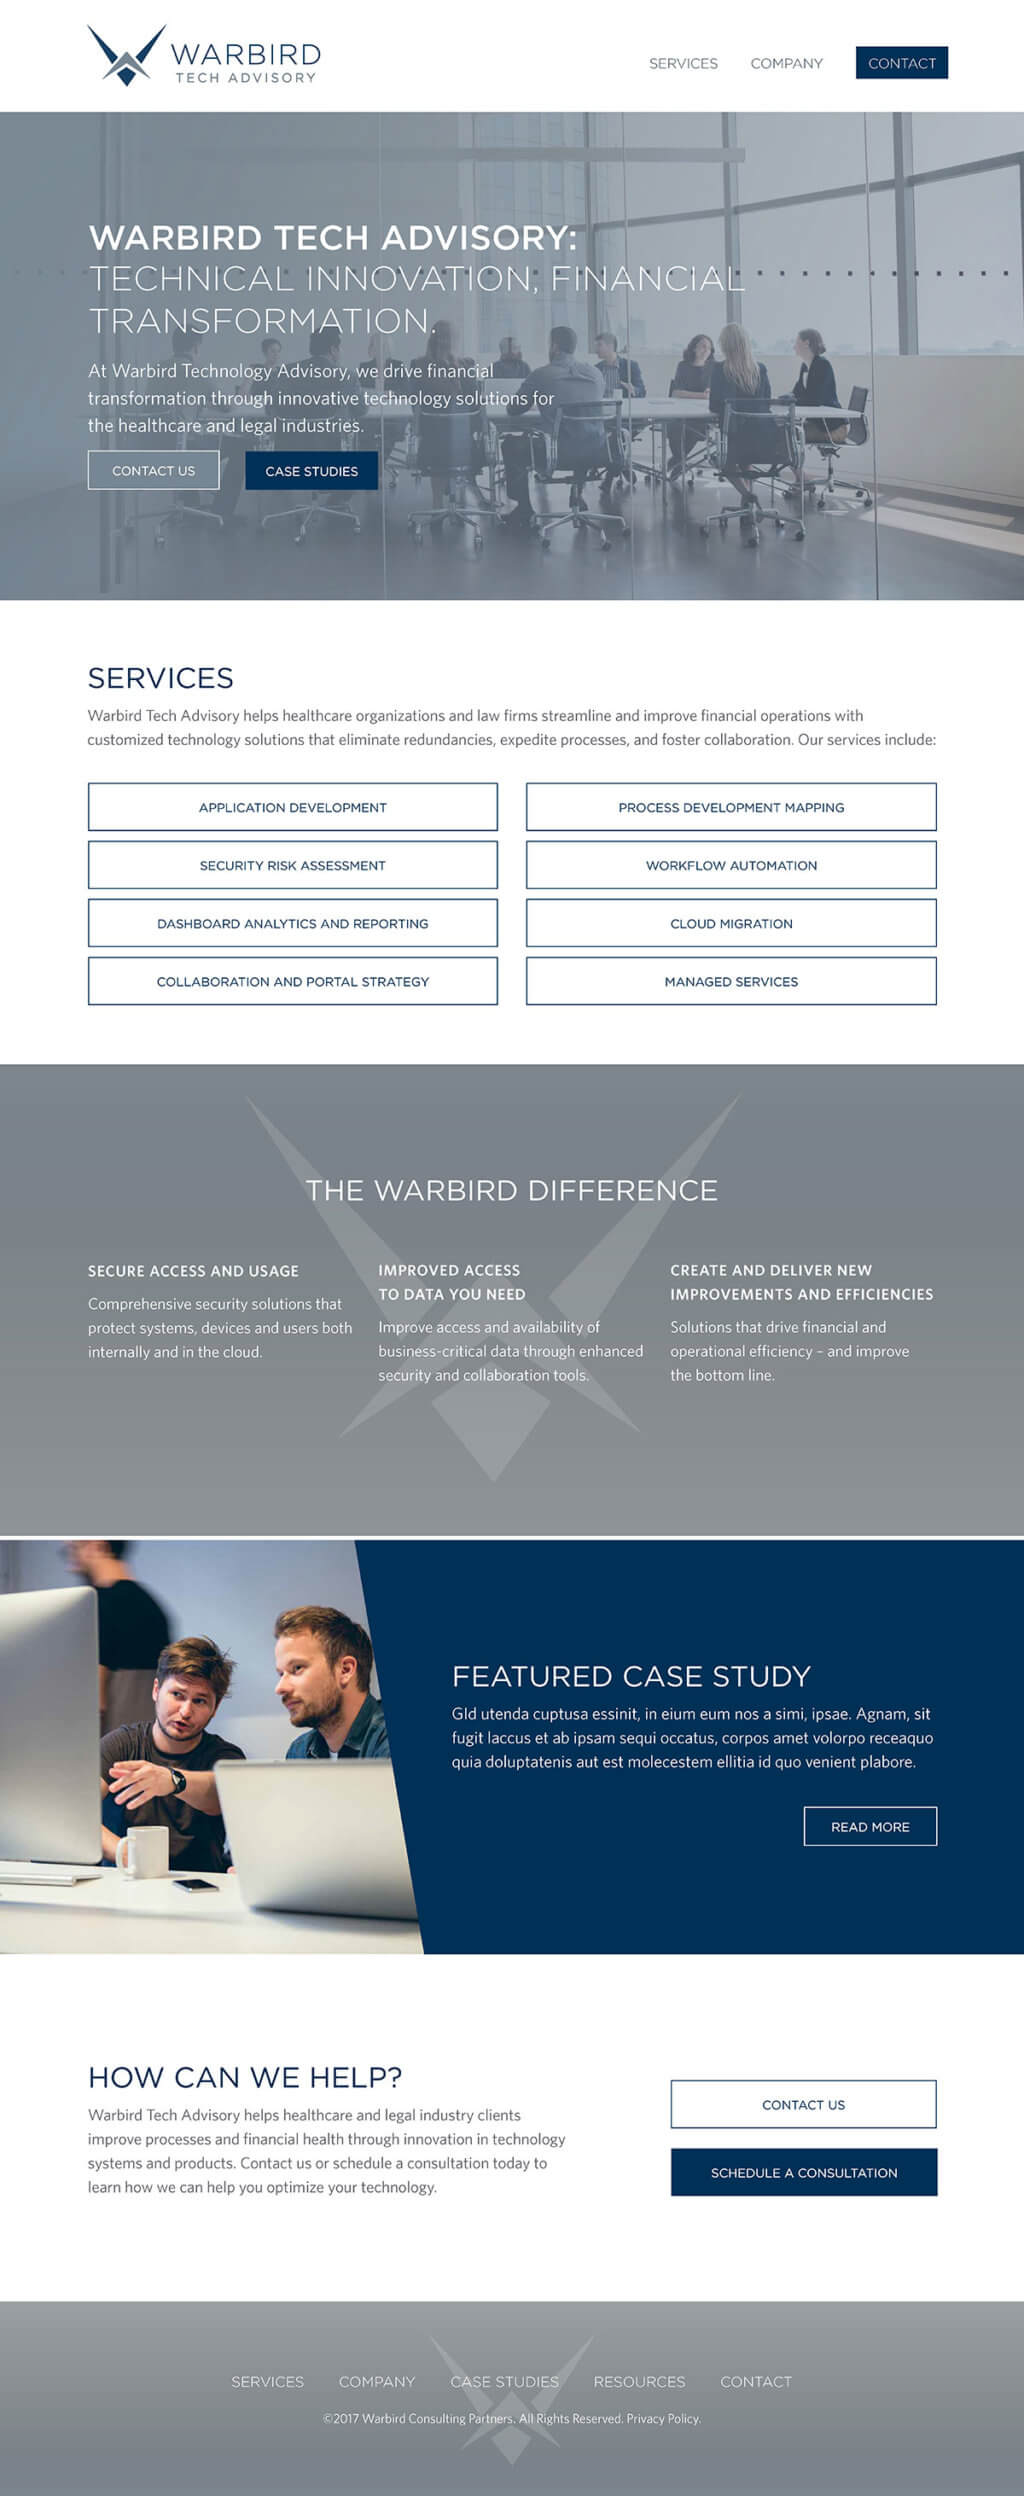 blue sky consulting firm case study Blue sky agency is a fully-integrated, independent advertising agency located in west midtown, atlanta we collaborate across disciplines to solve brand and business challenges for some of the fastest growing companies in the region.